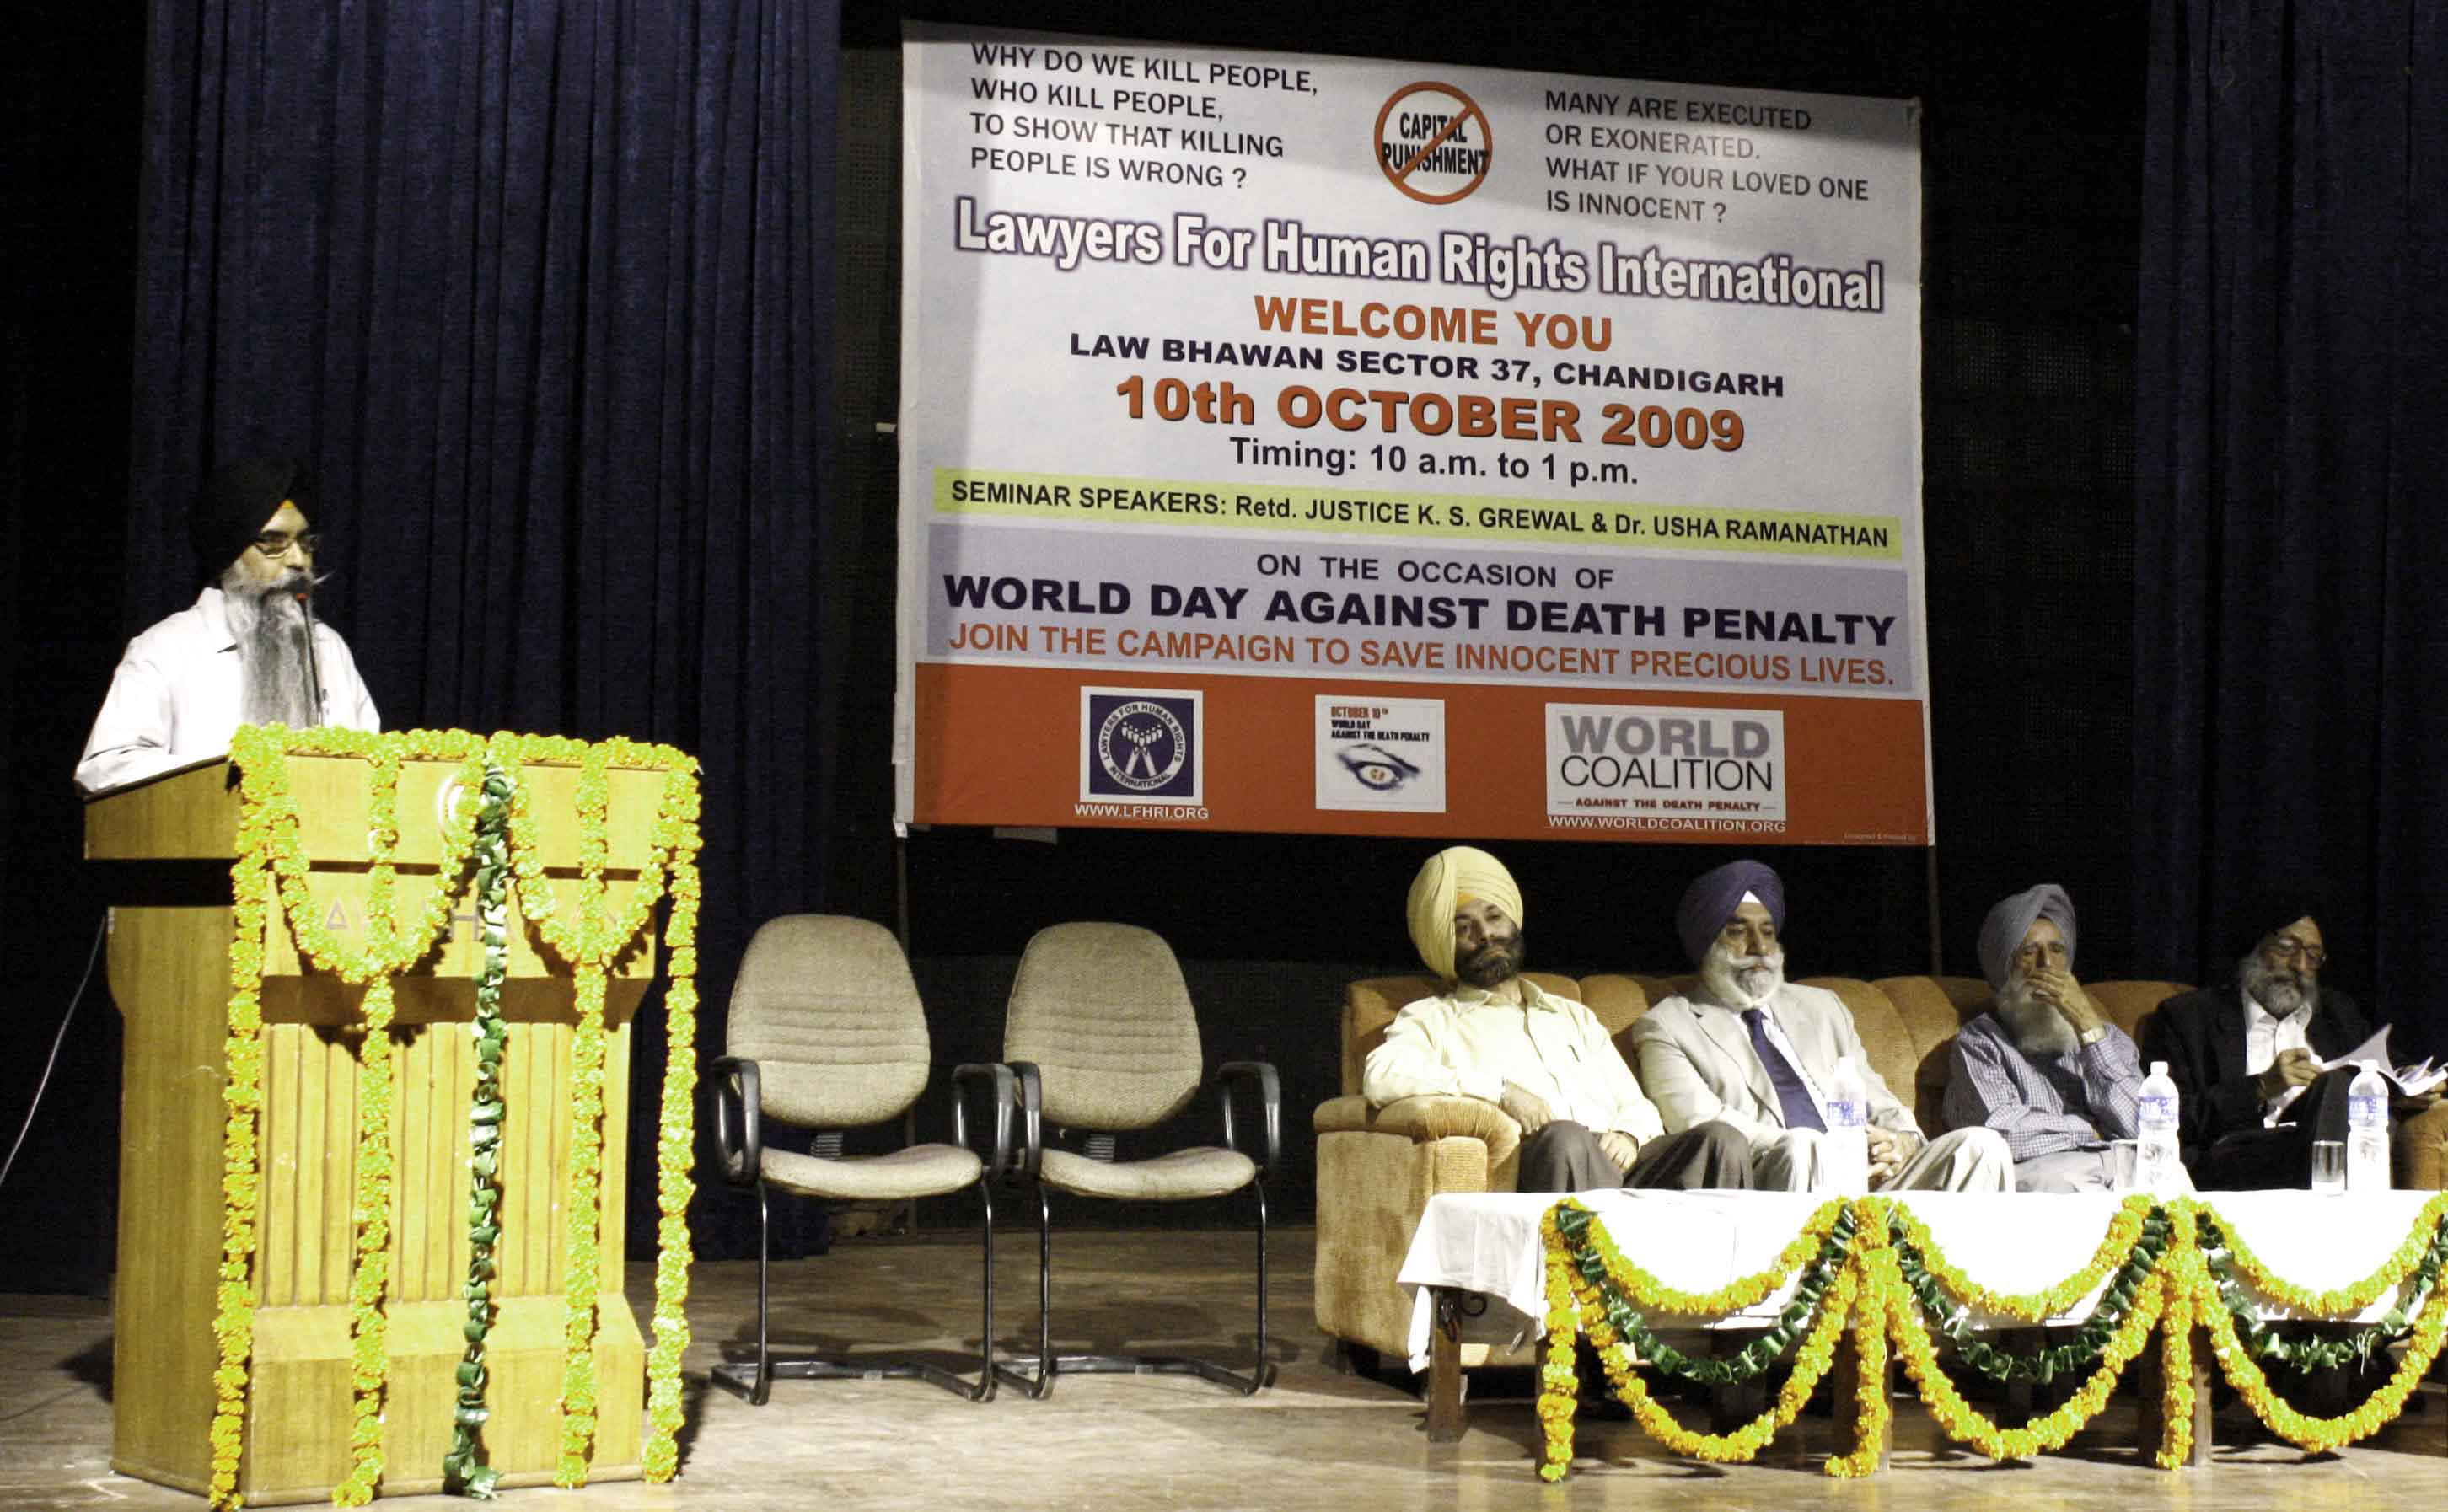 Navkiran Singh adressing in the seminar against death penalty